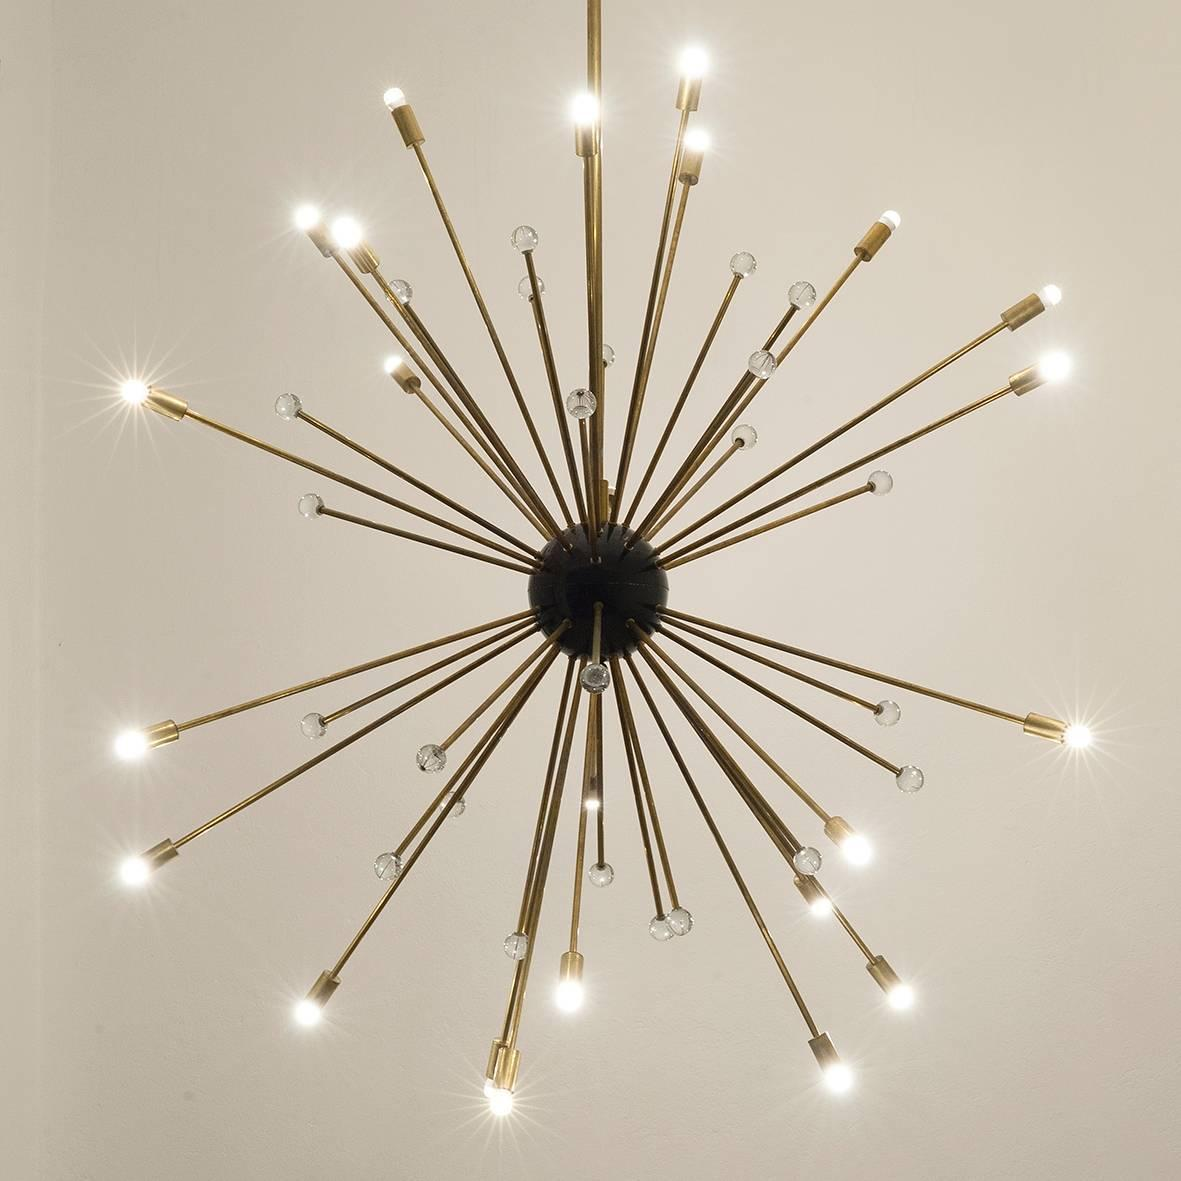 Sputnik chandelier in the style of italian stilnovo at 1stdibs - Lights and chandeliers ...